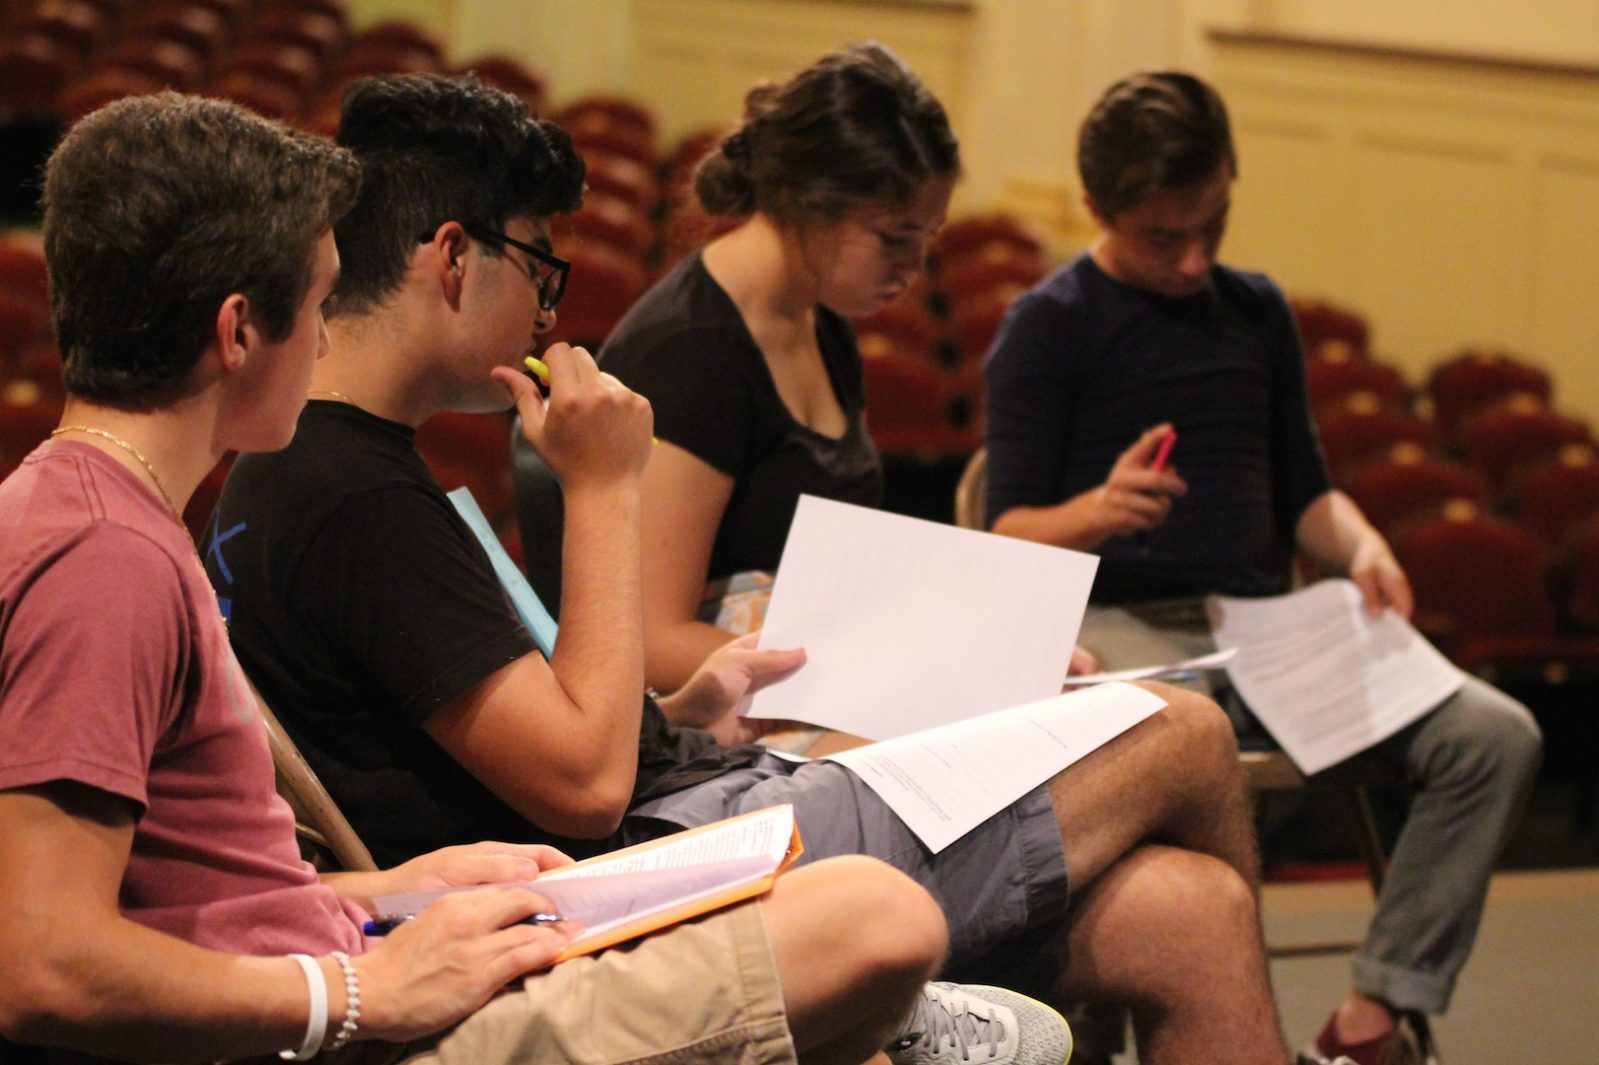 Photo taken by Mia Turco '18. Students hard at work at auditions for the play Lost in Yonkers.